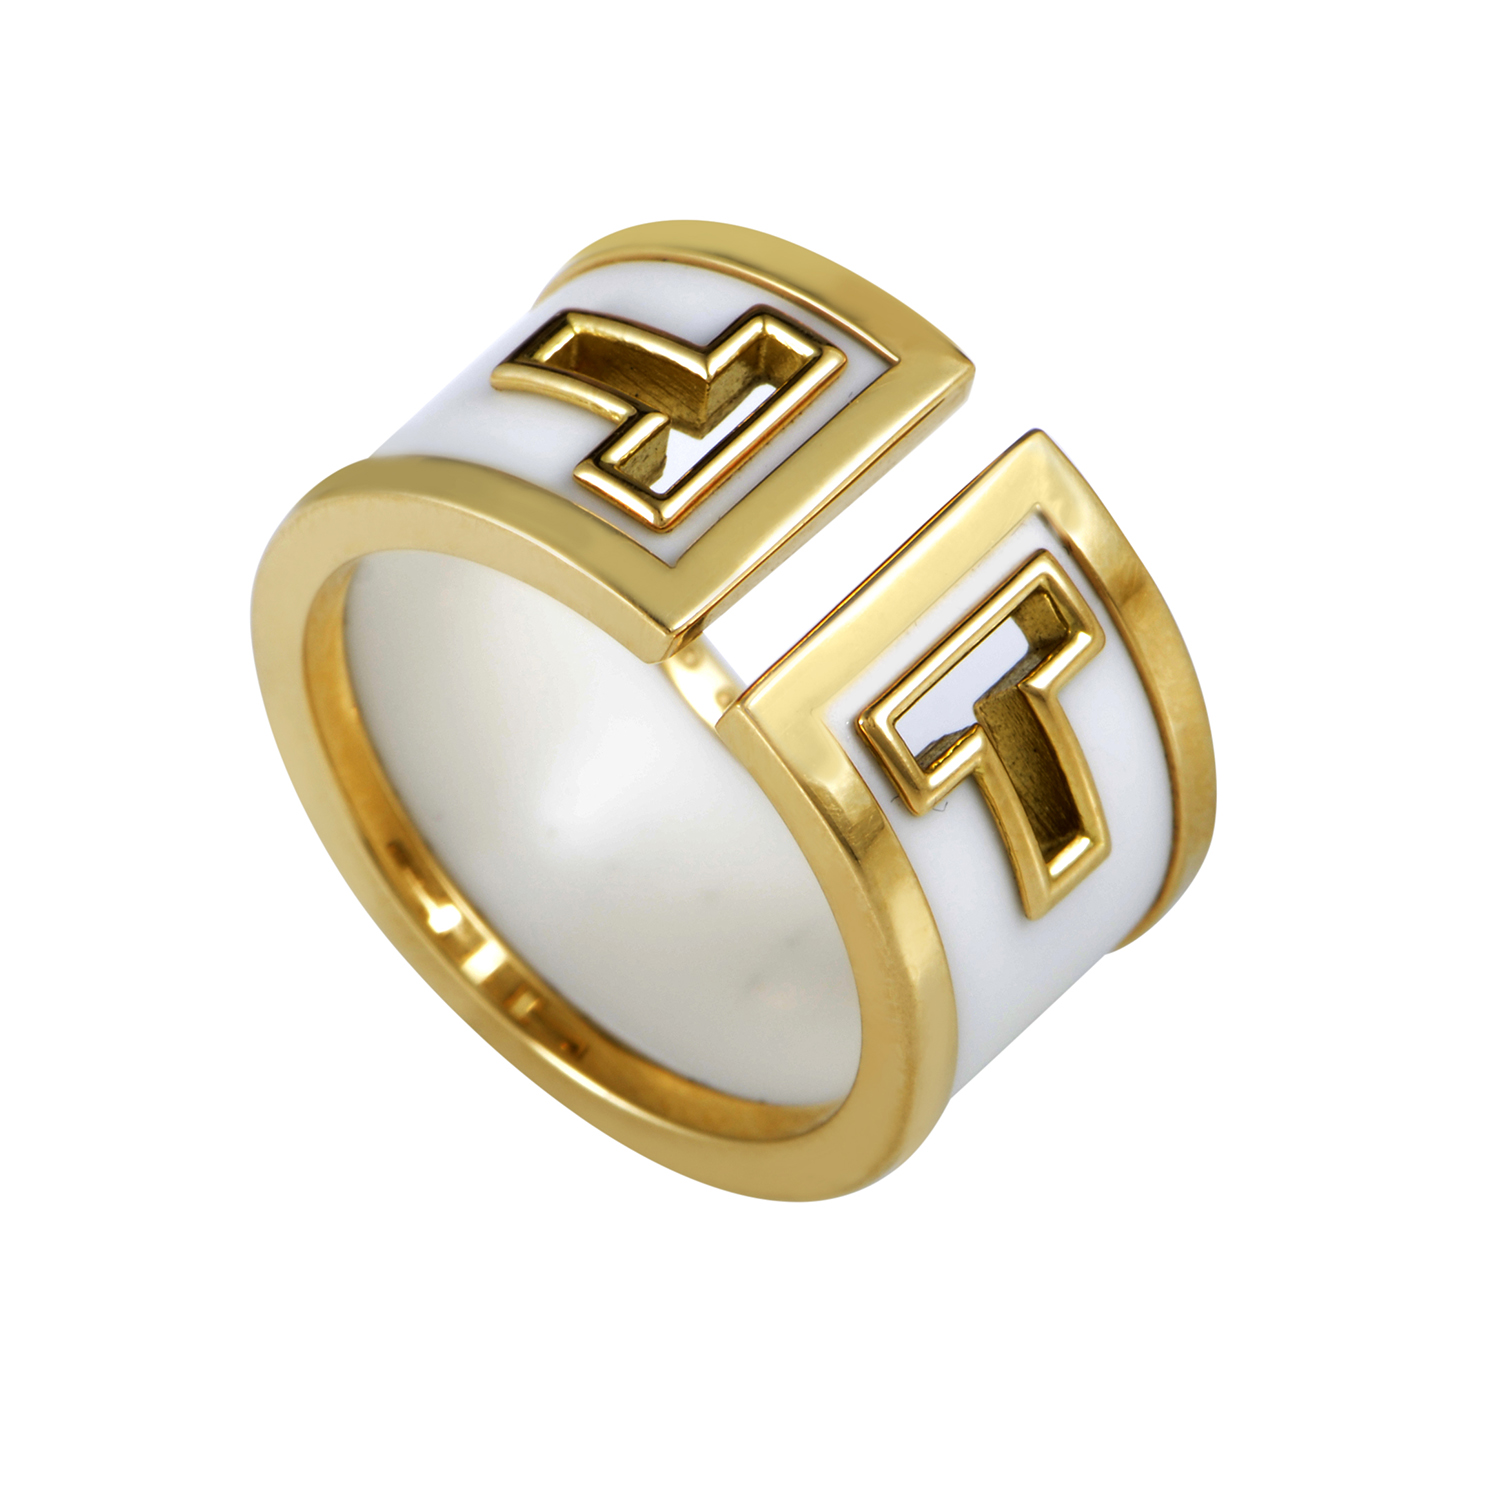 Tiffany & Co. 18K Yellow Gold White Onyx Band Ring